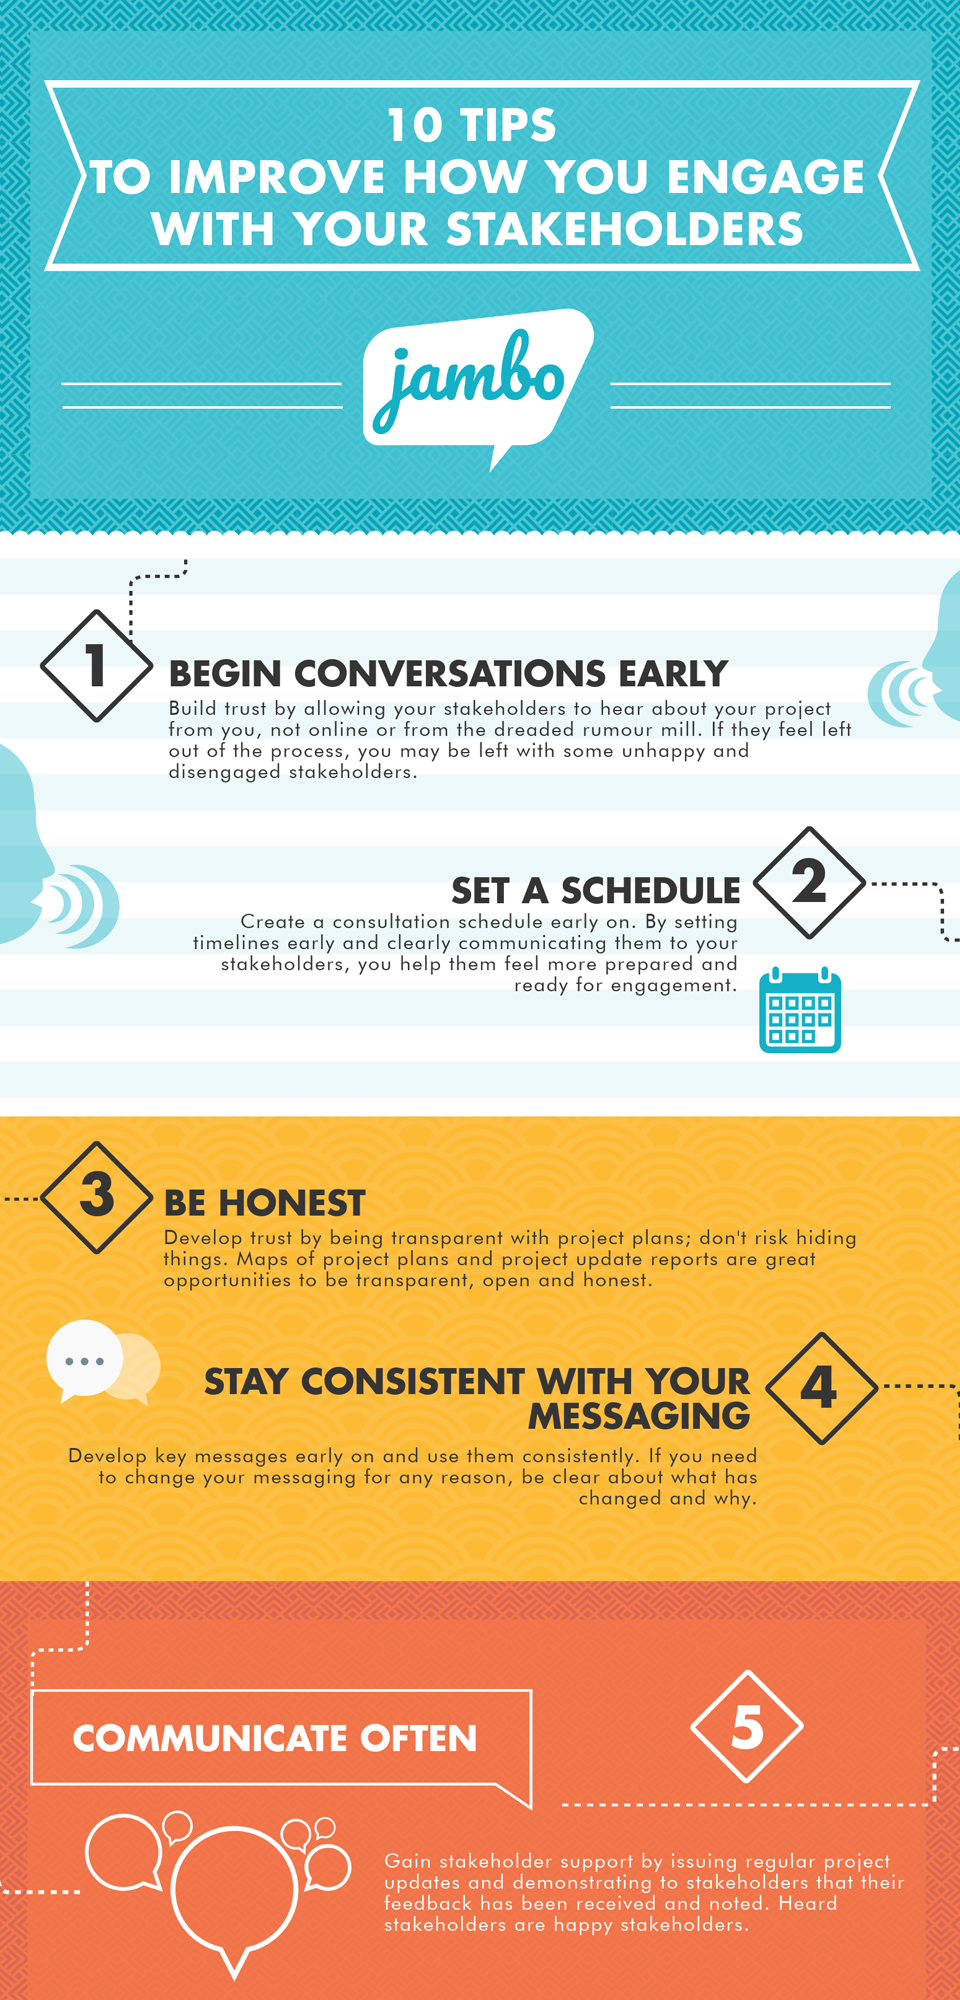 Top-10-Tips-to-Improve-How-You-Engage-With-Stakeholders_Infographic-1